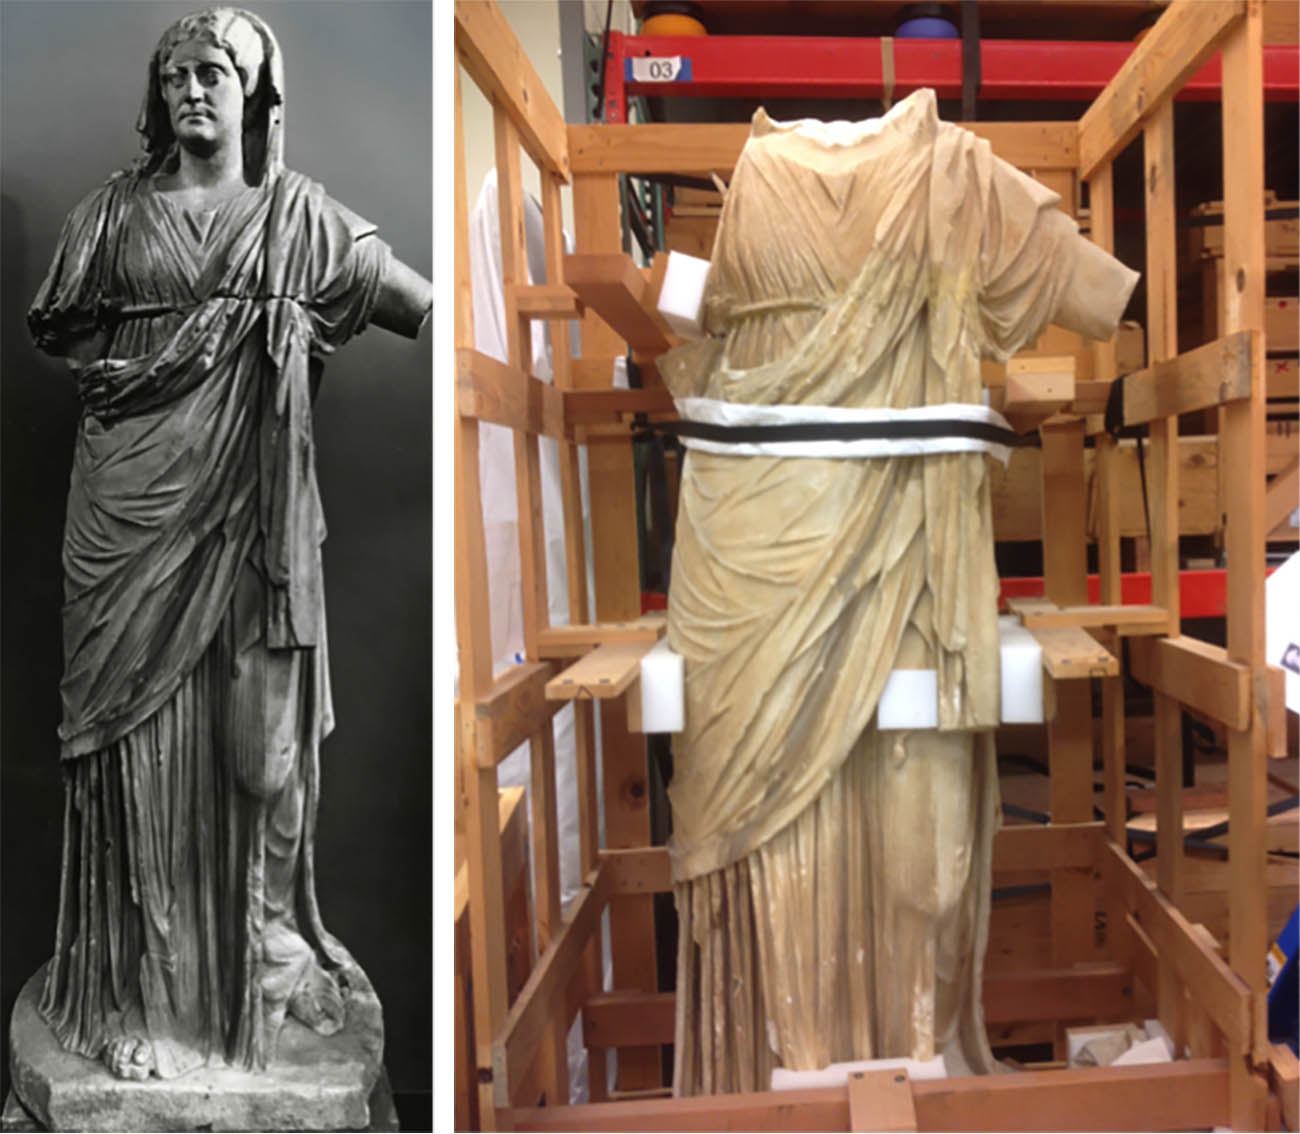 Left: Archival photograph still of the statue with its head. Right: Statue of Draped Female (early 3rd century, Roman. Marble, H: 75 3/16 in. The J. Paul Getty Museum, 72.AA.153) awaiting restoration.